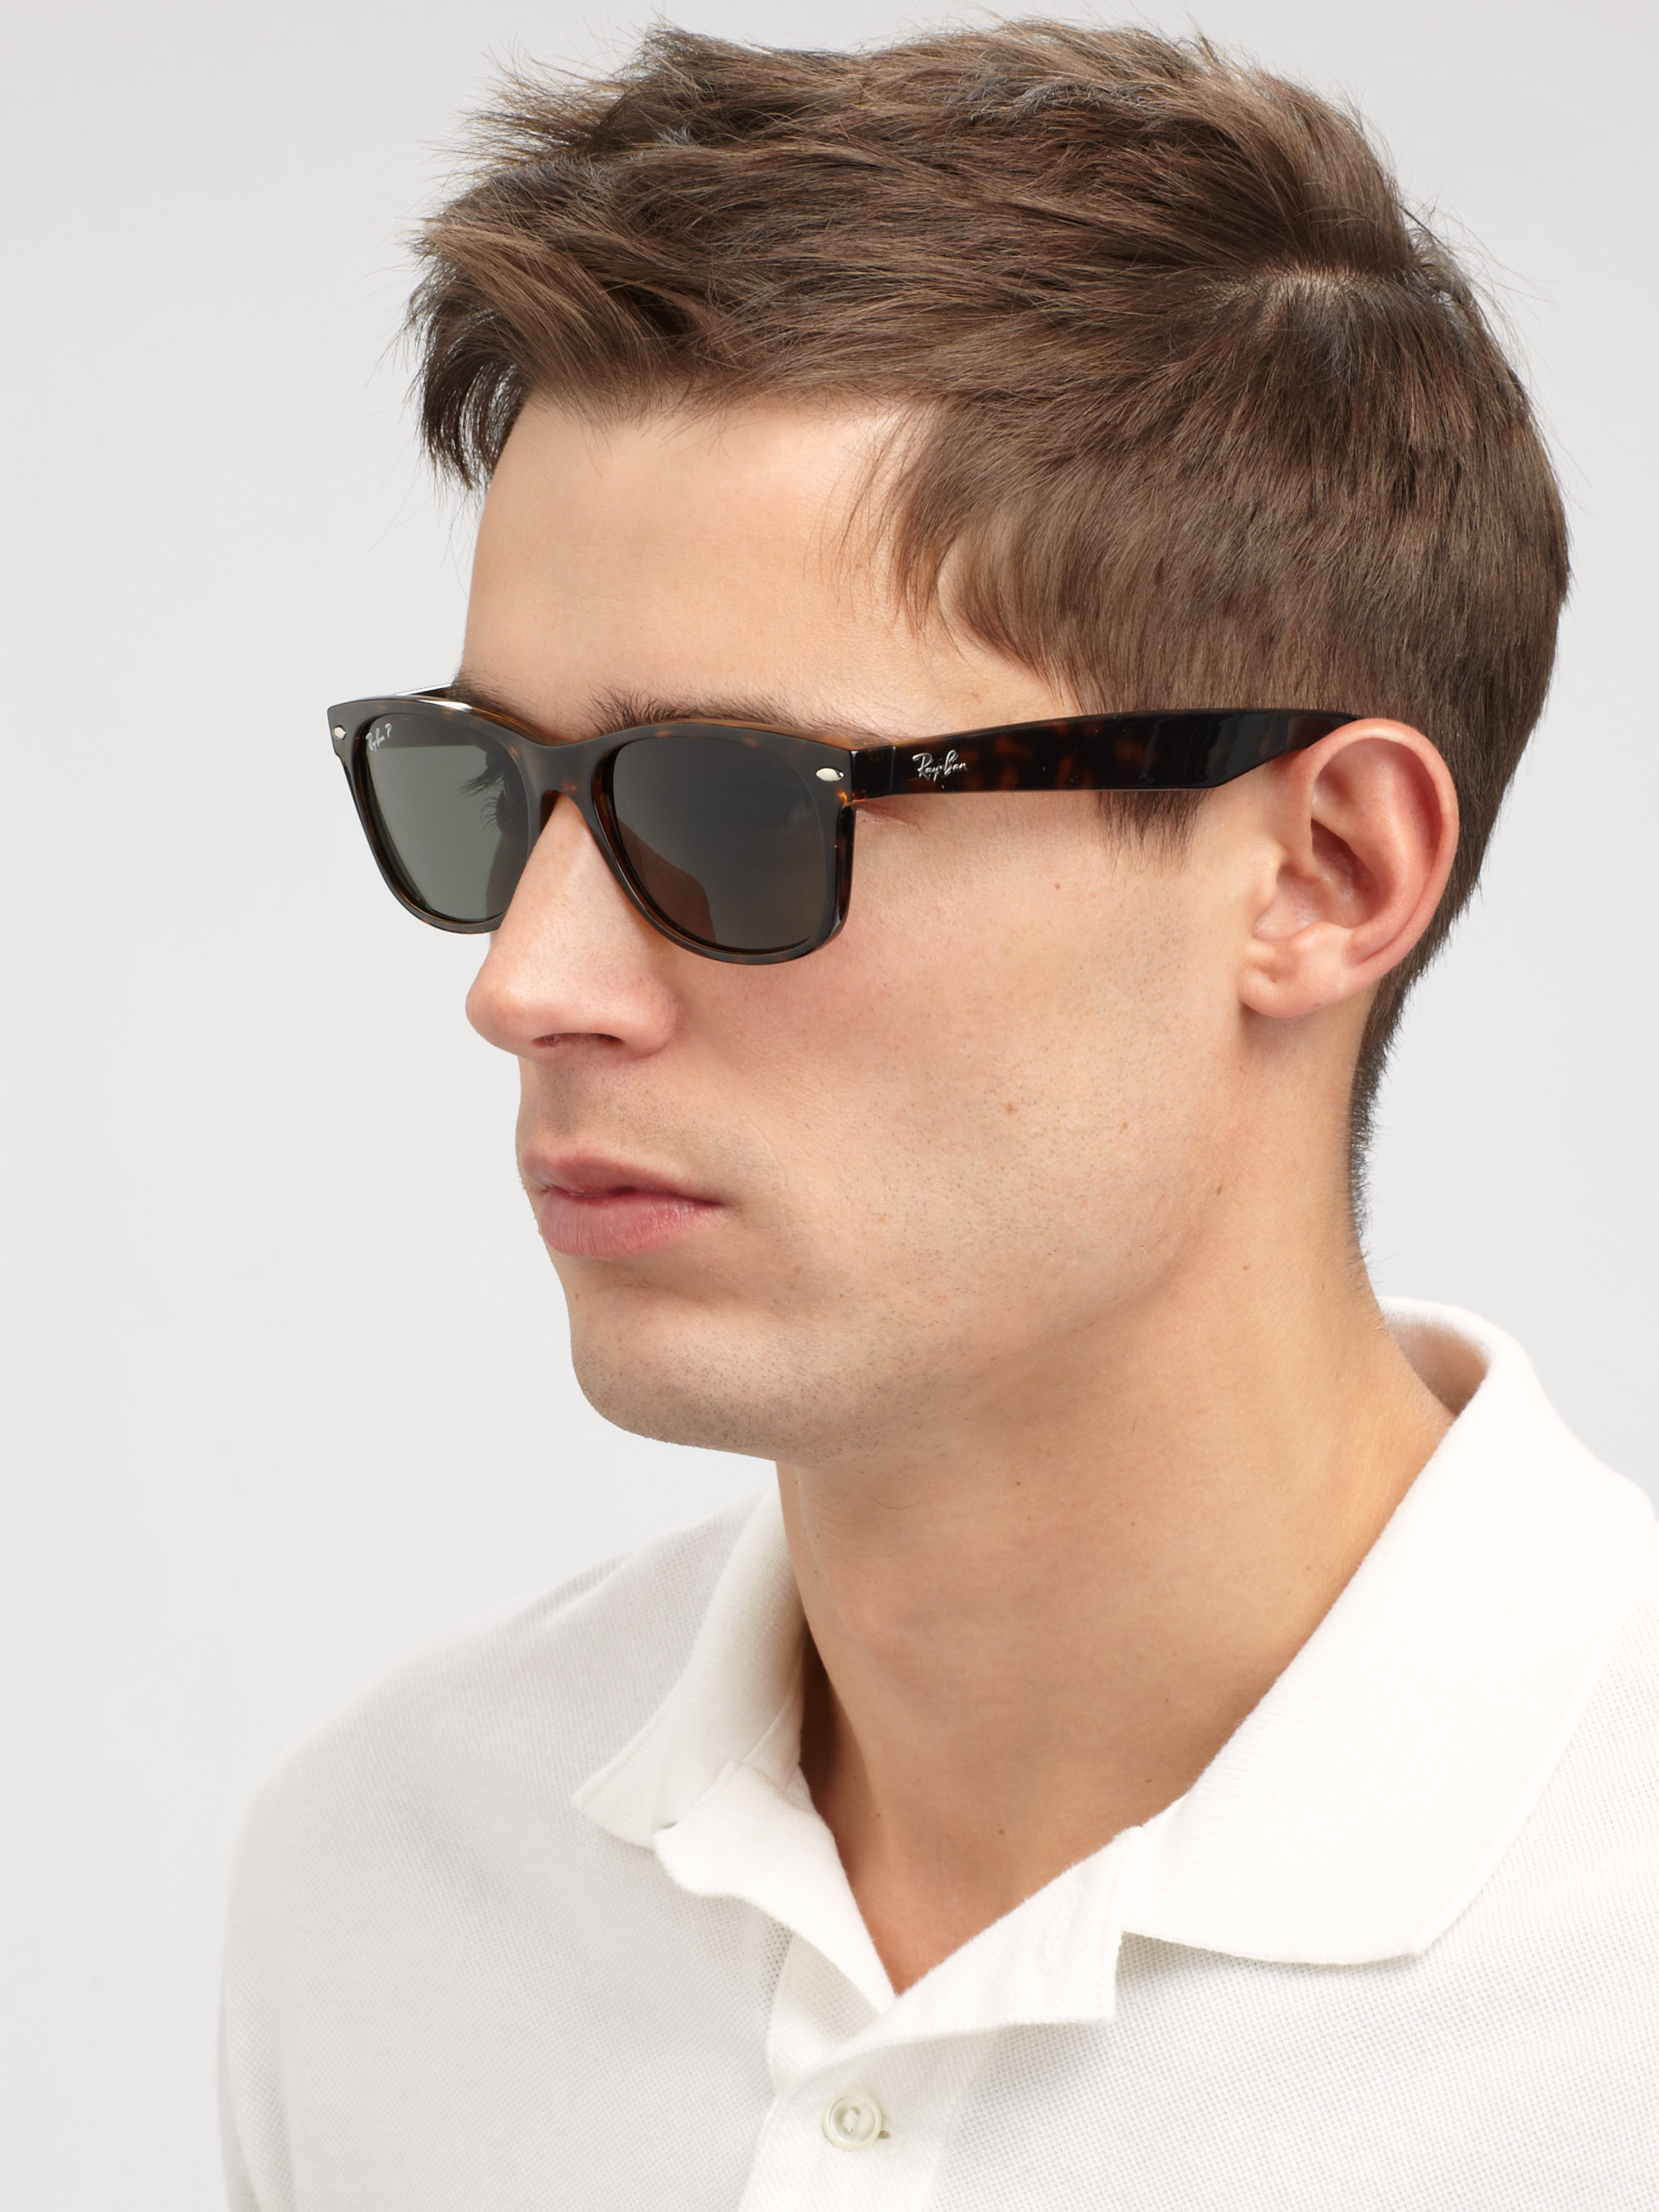 ray ban new wayfarer 2132 sizes